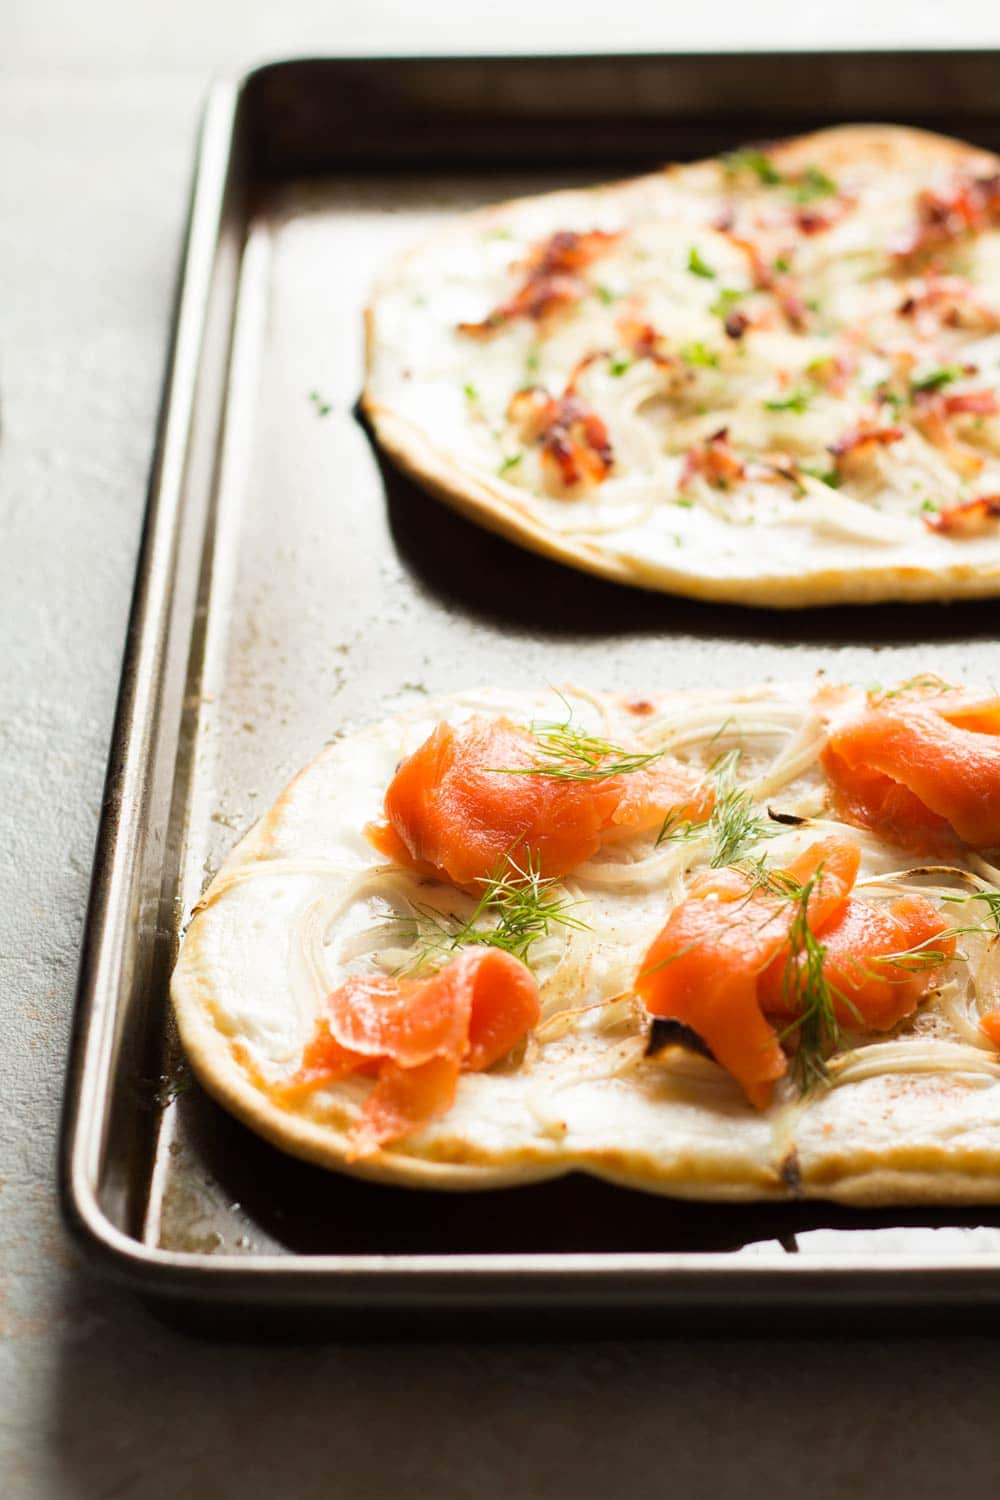 Detail of two flammkuchen. Top one with bacon and onions, bottom with smoked salmon, onions and dill, in a pan.